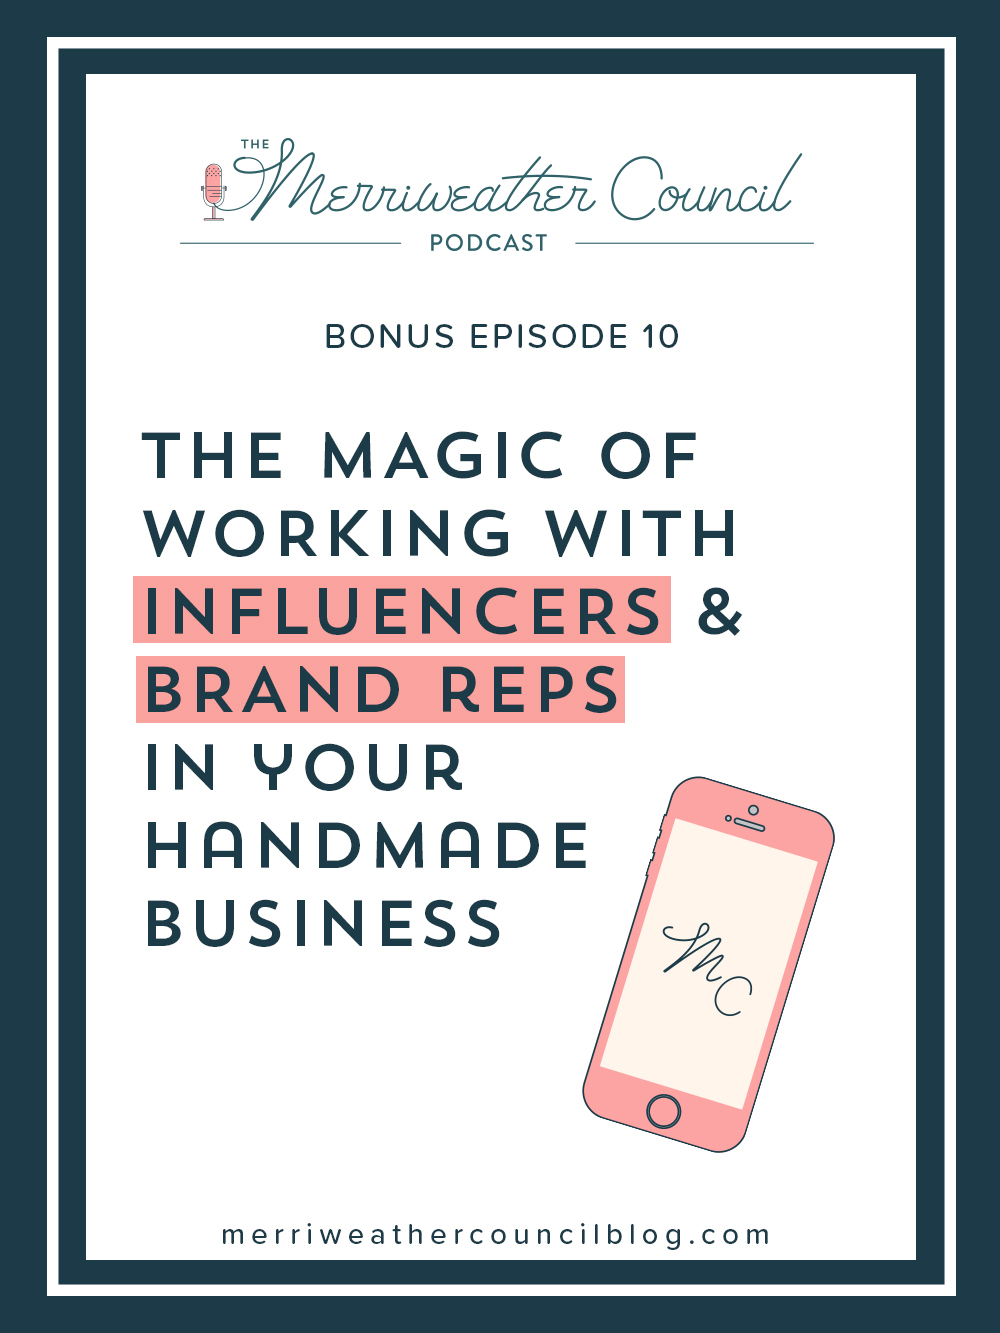 the magic of working with influencers + brand reps in handmade business   the merriweather council podcast